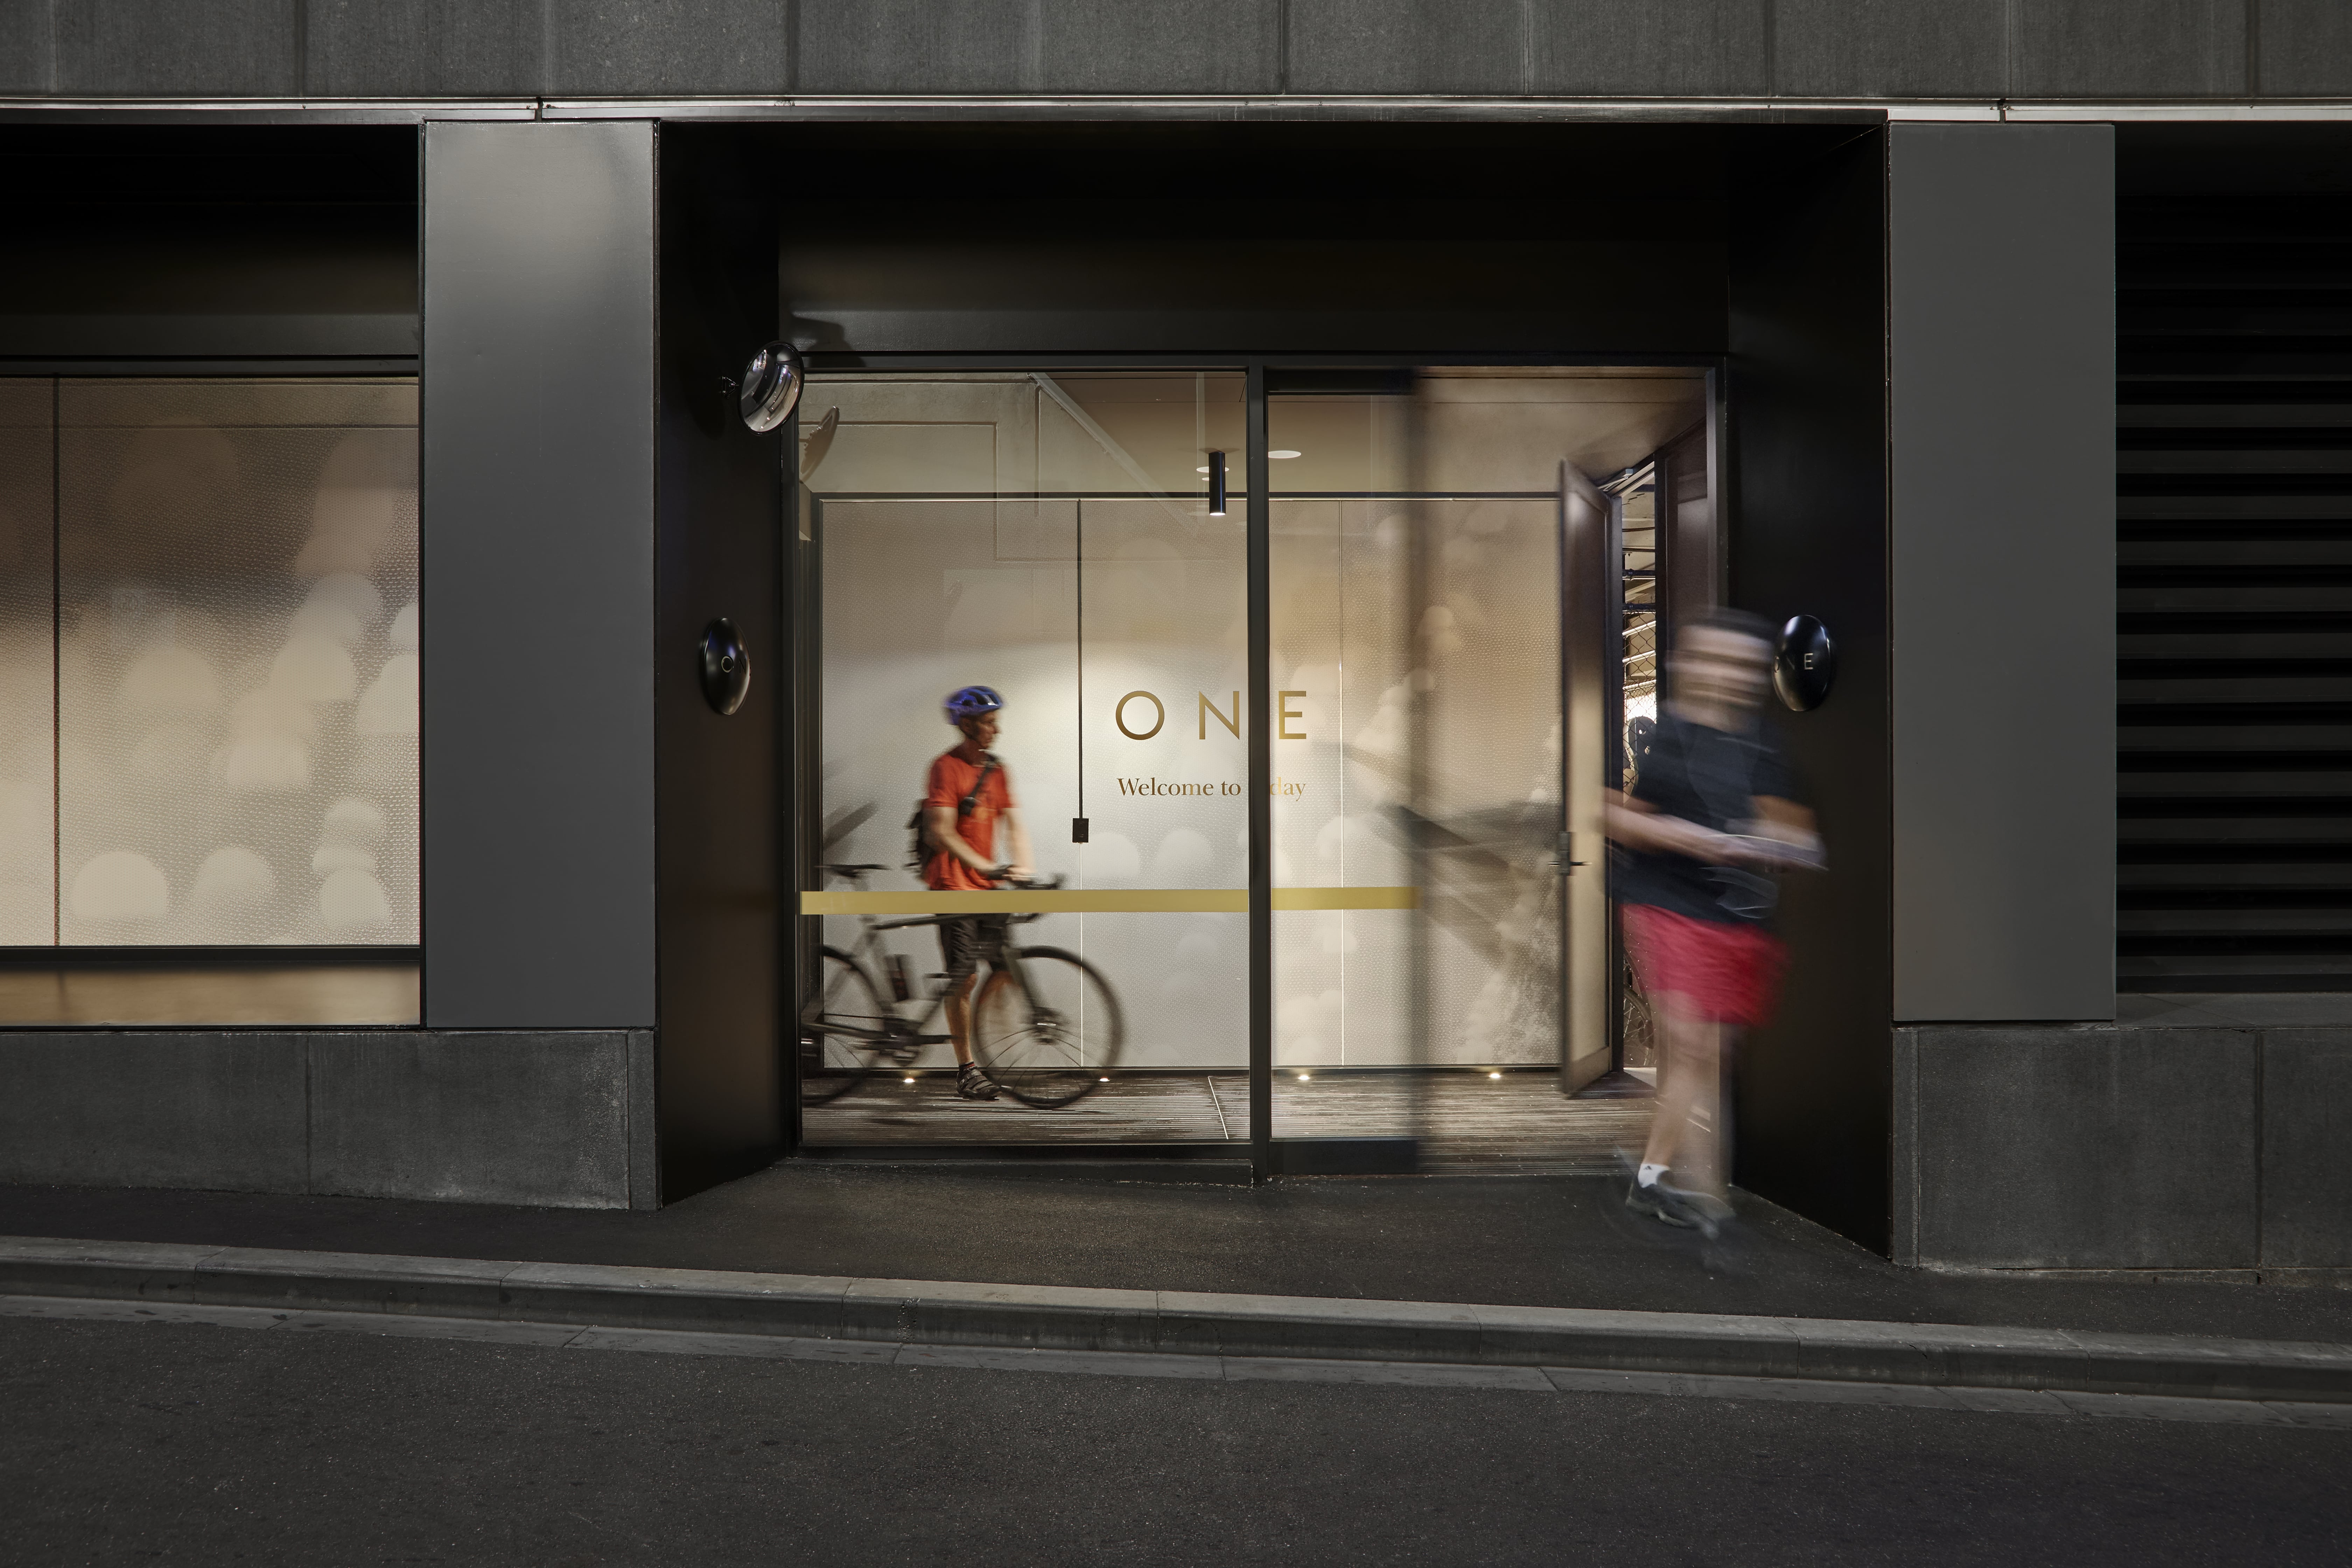 ▲ In all major cities, ride sharing, cycling infrastructure (such as end-of-trip facilities and bike lanes), e-bikes and e-scooters are all working to reduce the need for carparking within the CBD and commercial developments. Image: Gray Puksand